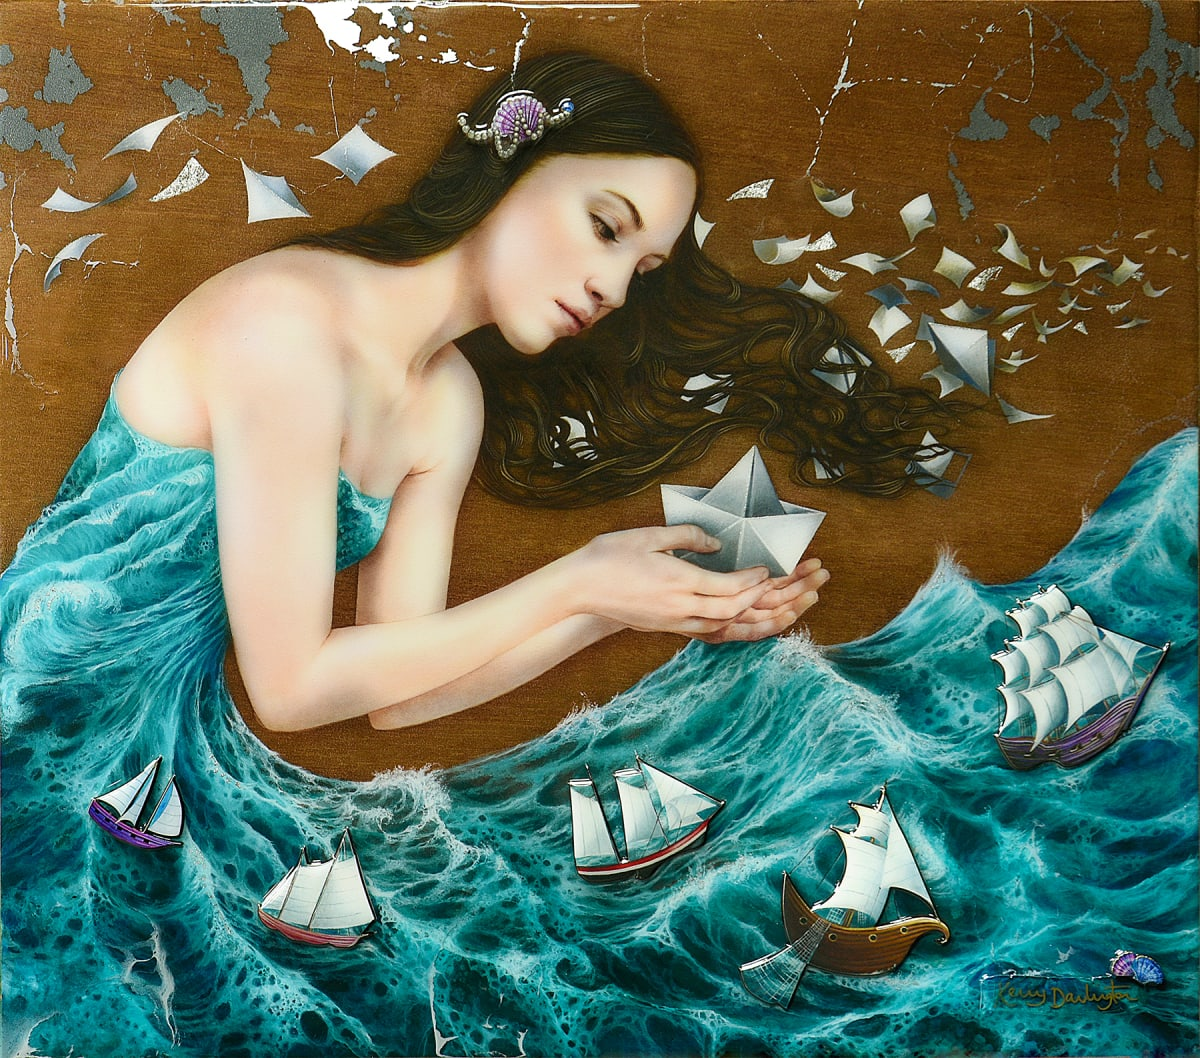 KERRY DARLINGTON, THE PAPER BOAT